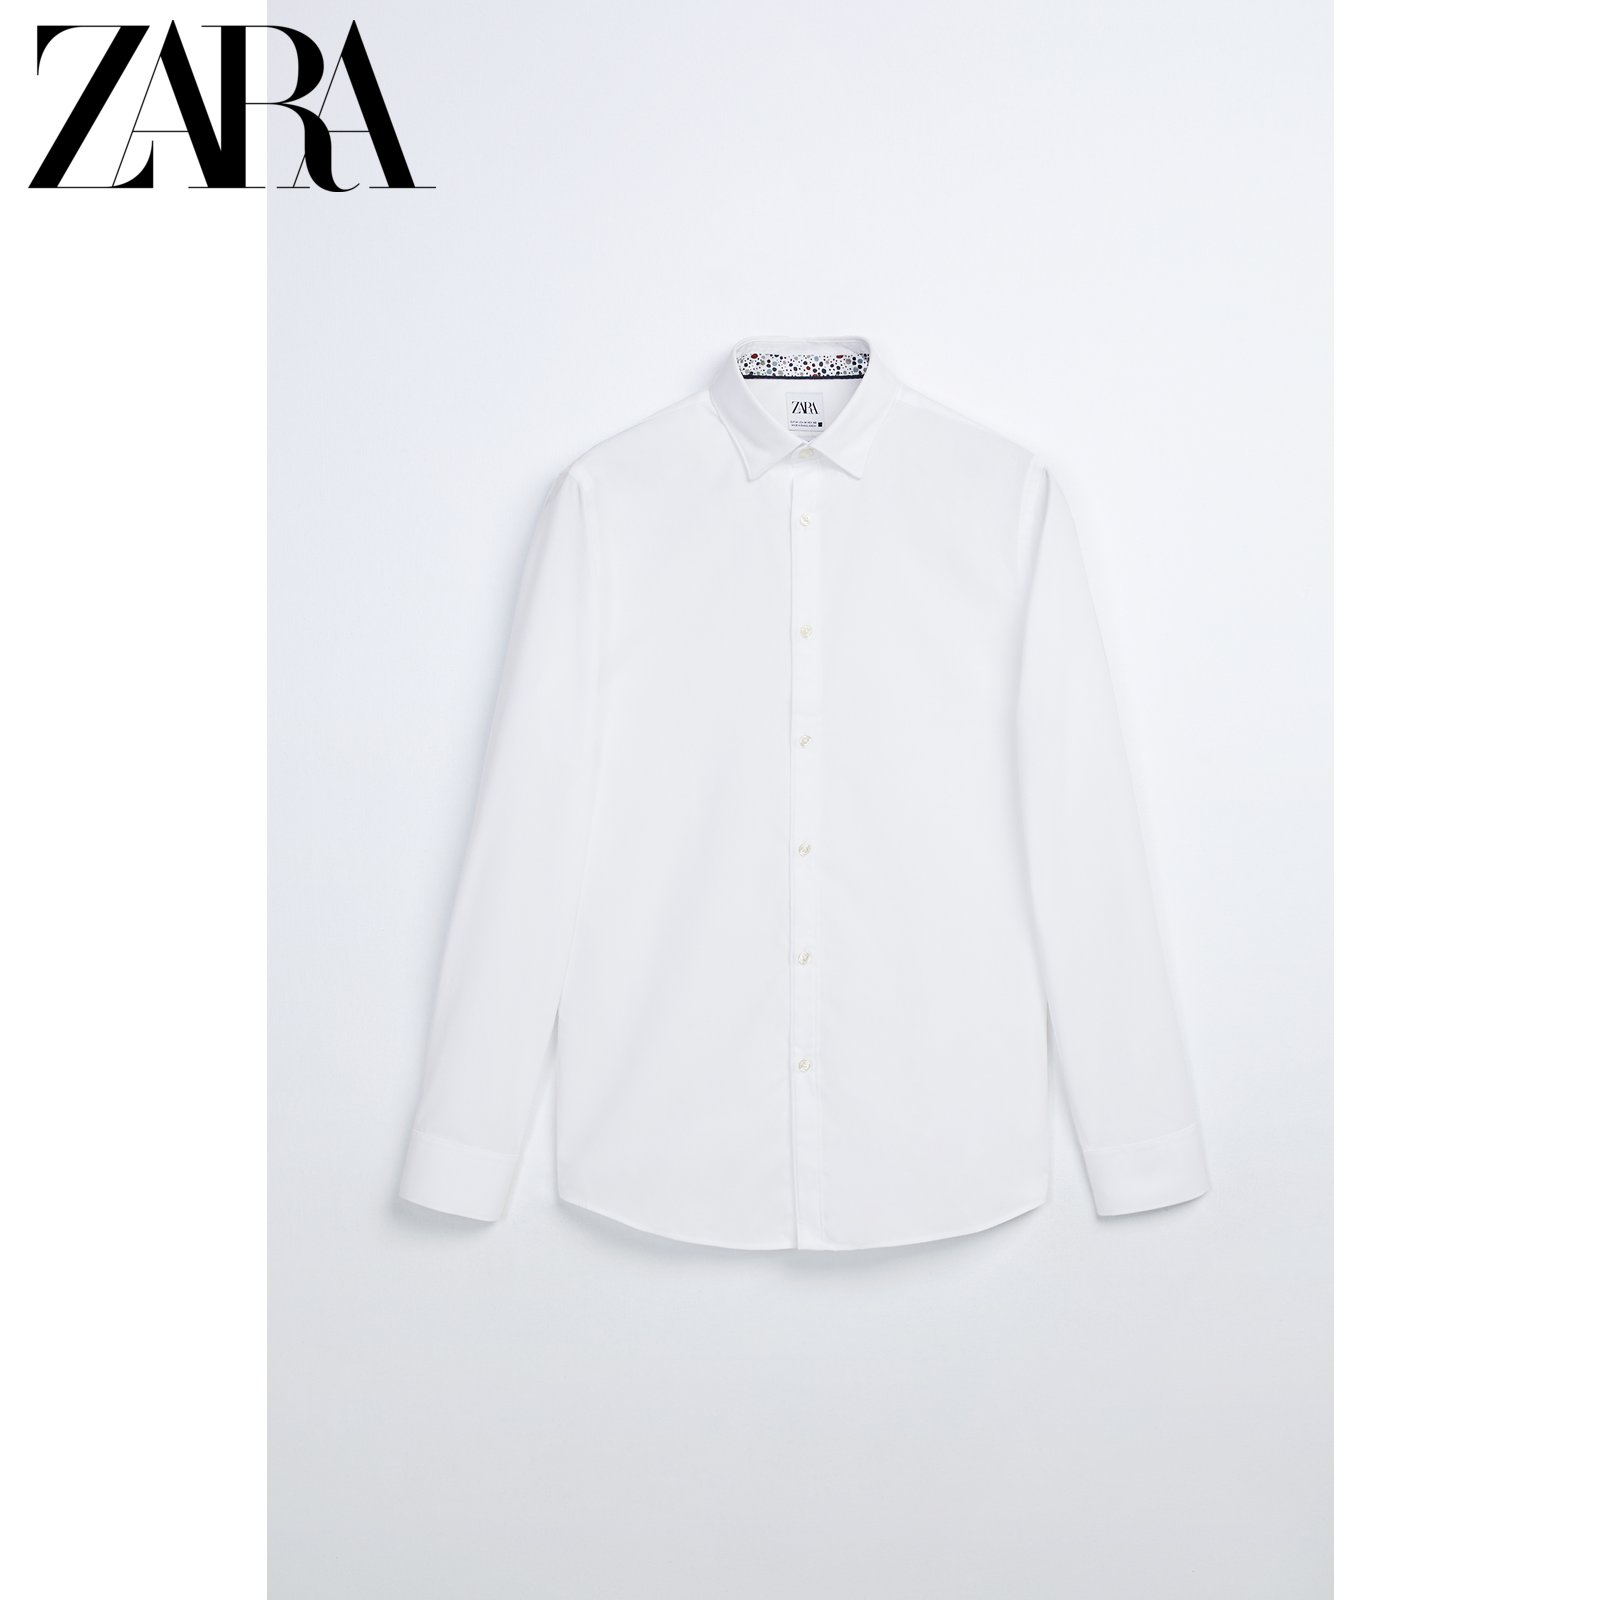 ZARA new men's clothing easy ironing texture long-sleeved white shirt 07545405250